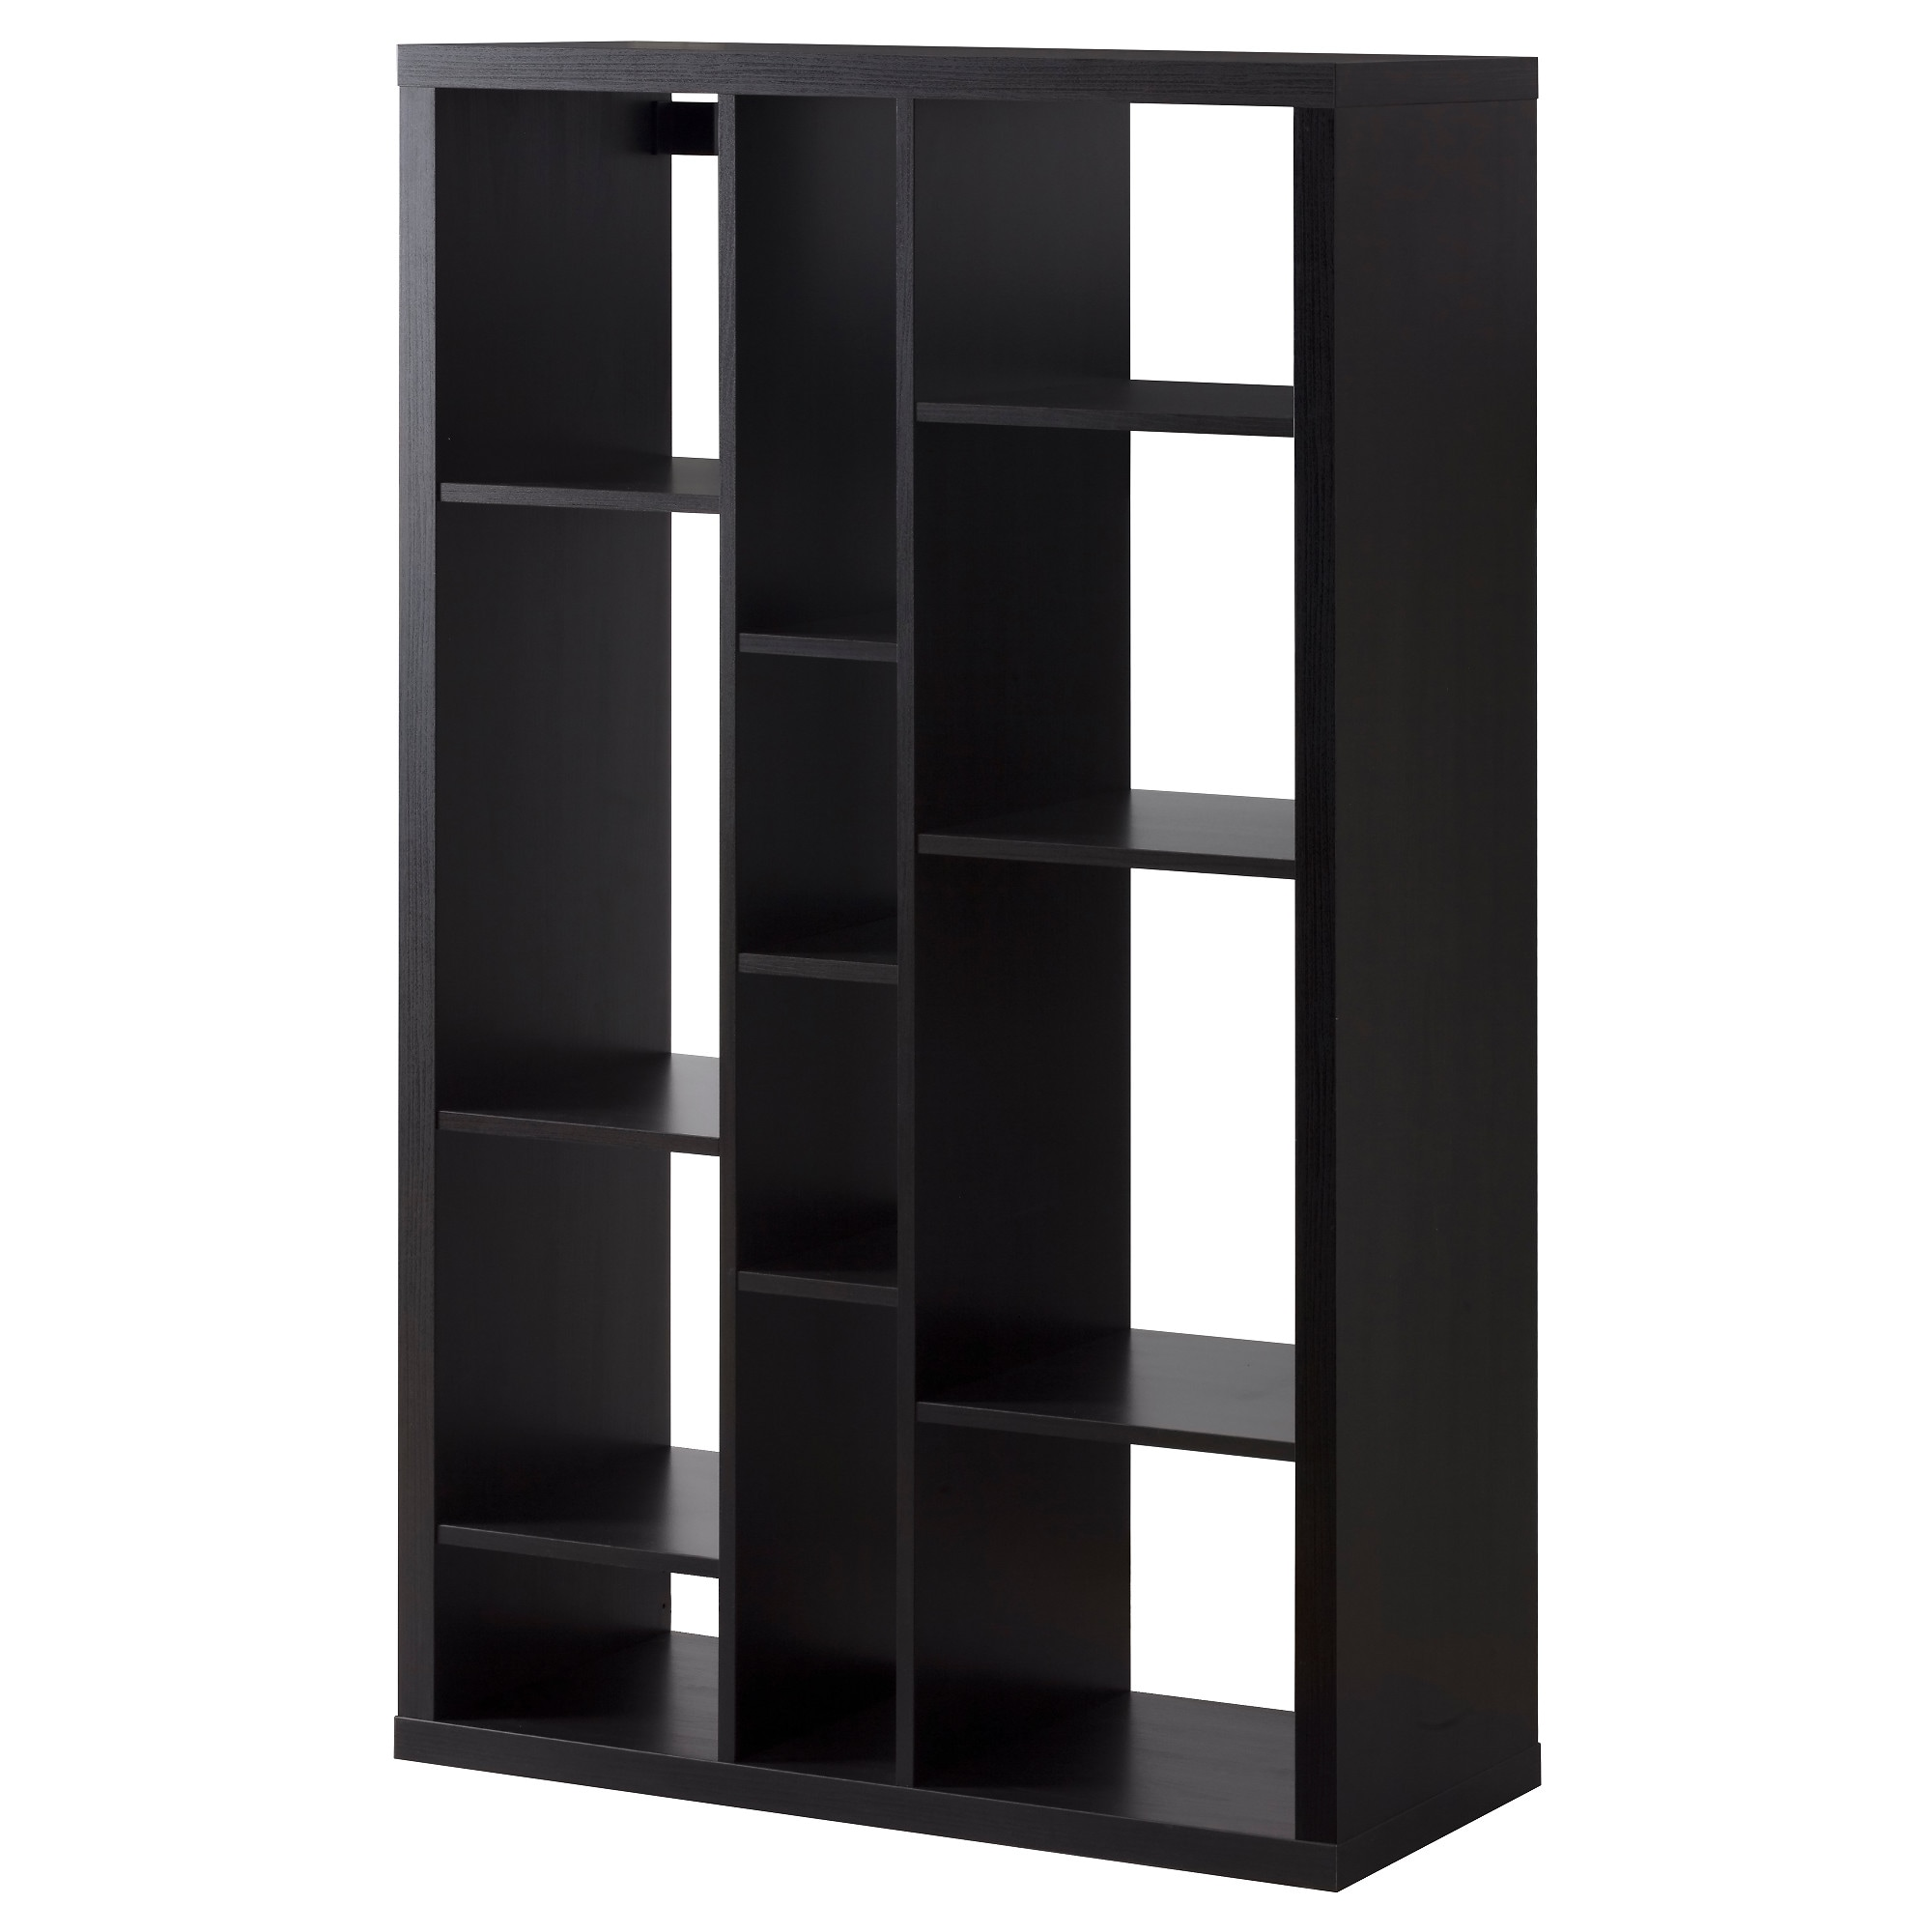 ikea expedit bookshelves images galleries with a bite. Black Bedroom Furniture Sets. Home Design Ideas